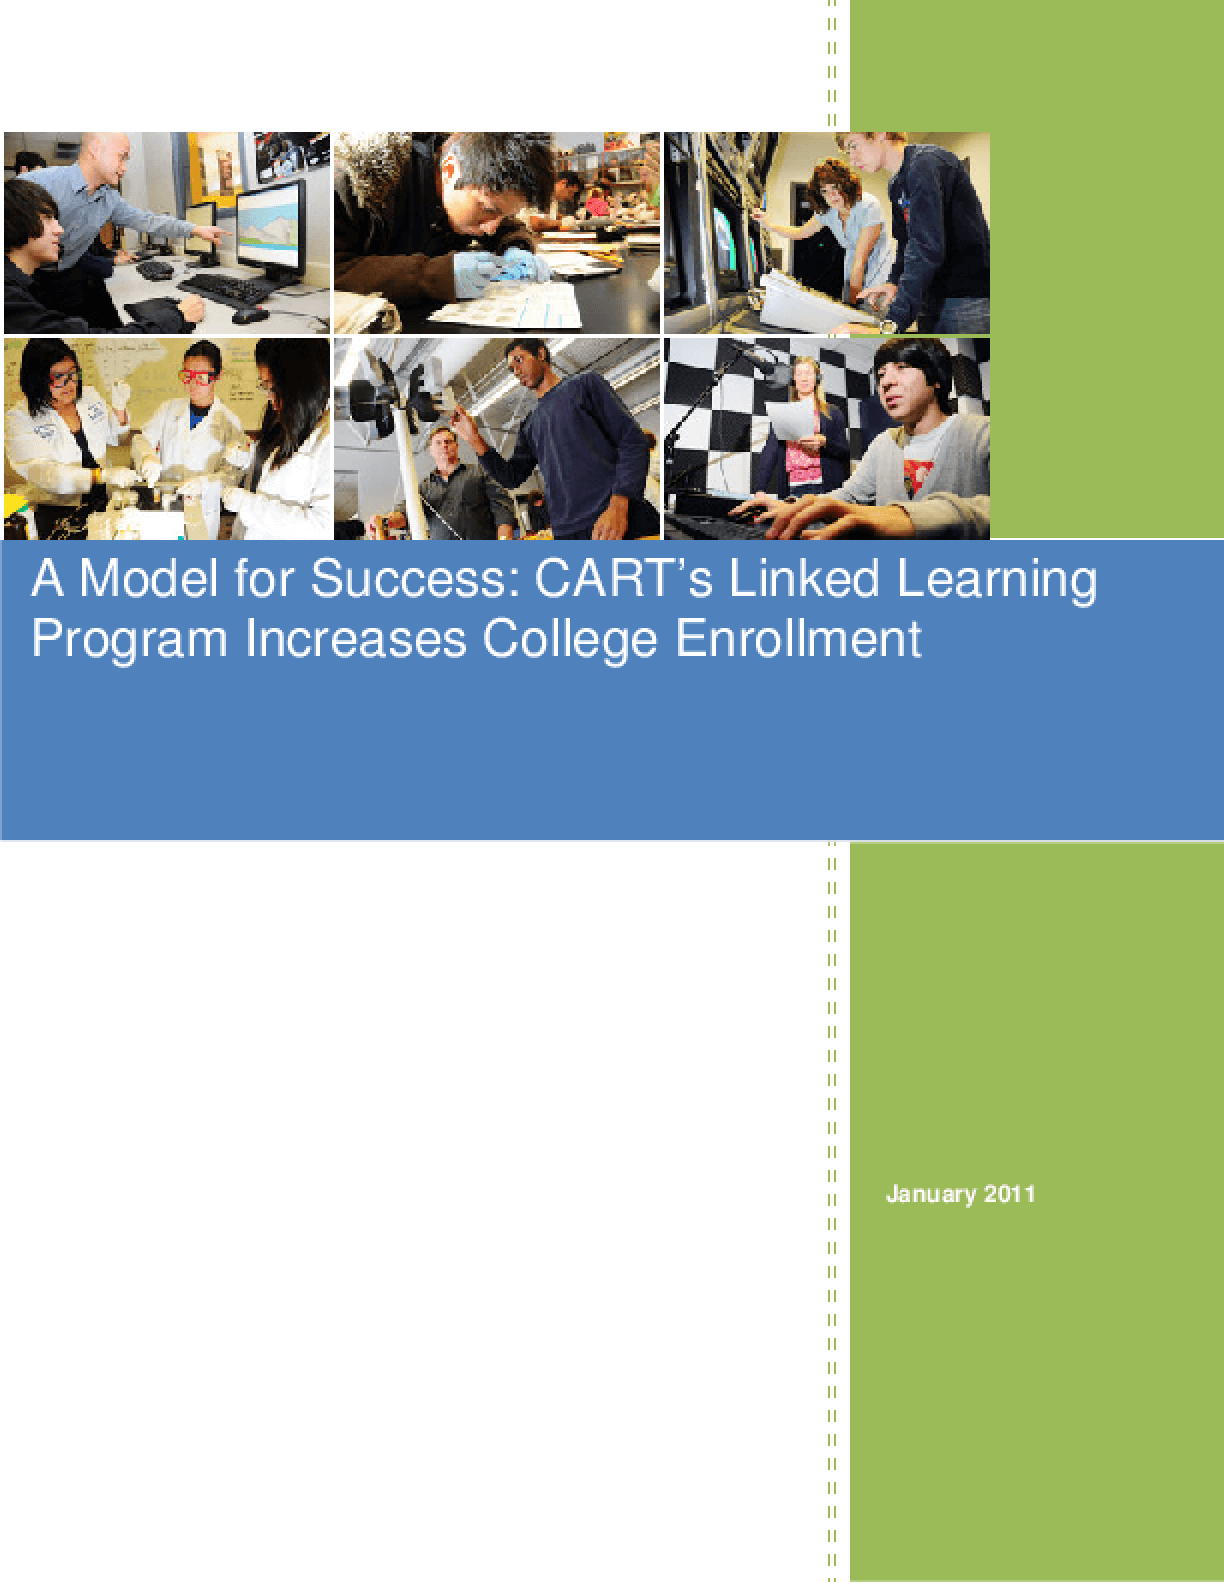 Model for Success: CART's Linked Learning Program Increases College Enrollment, A